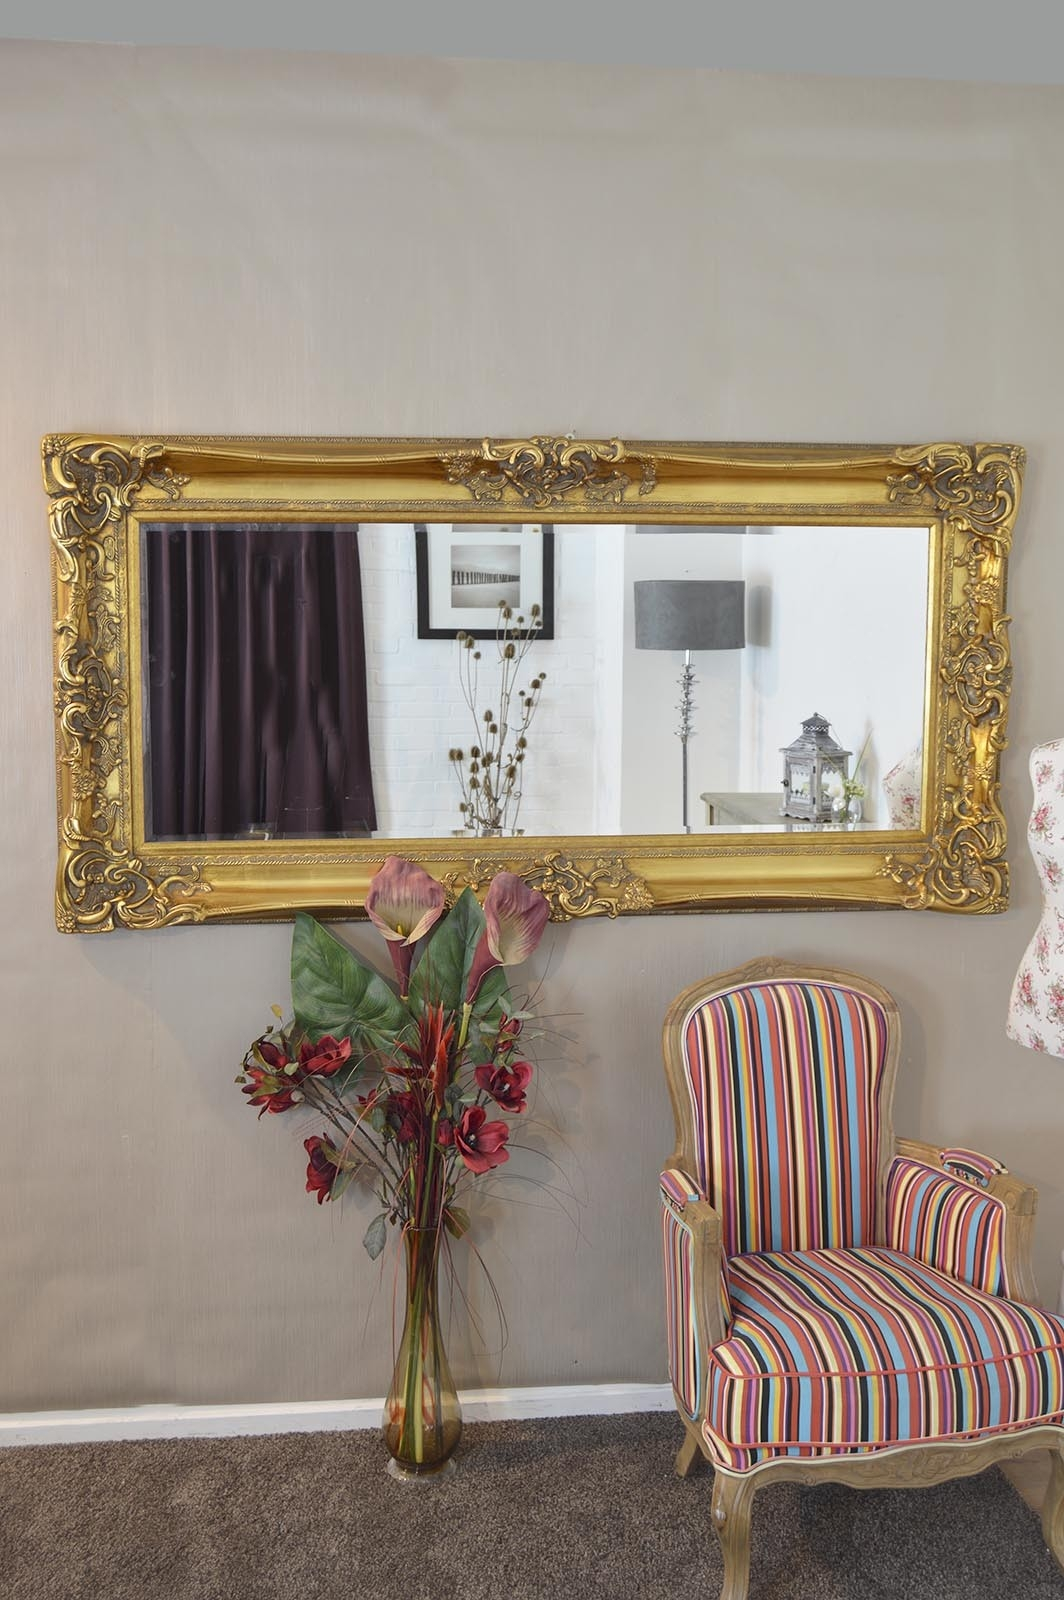 Frame Gold Antique Shab Chic Ornate Wall Mirror 6ft X 3ft 183 X With Shabby Chic Gold Mirror (Image 8 of 15)